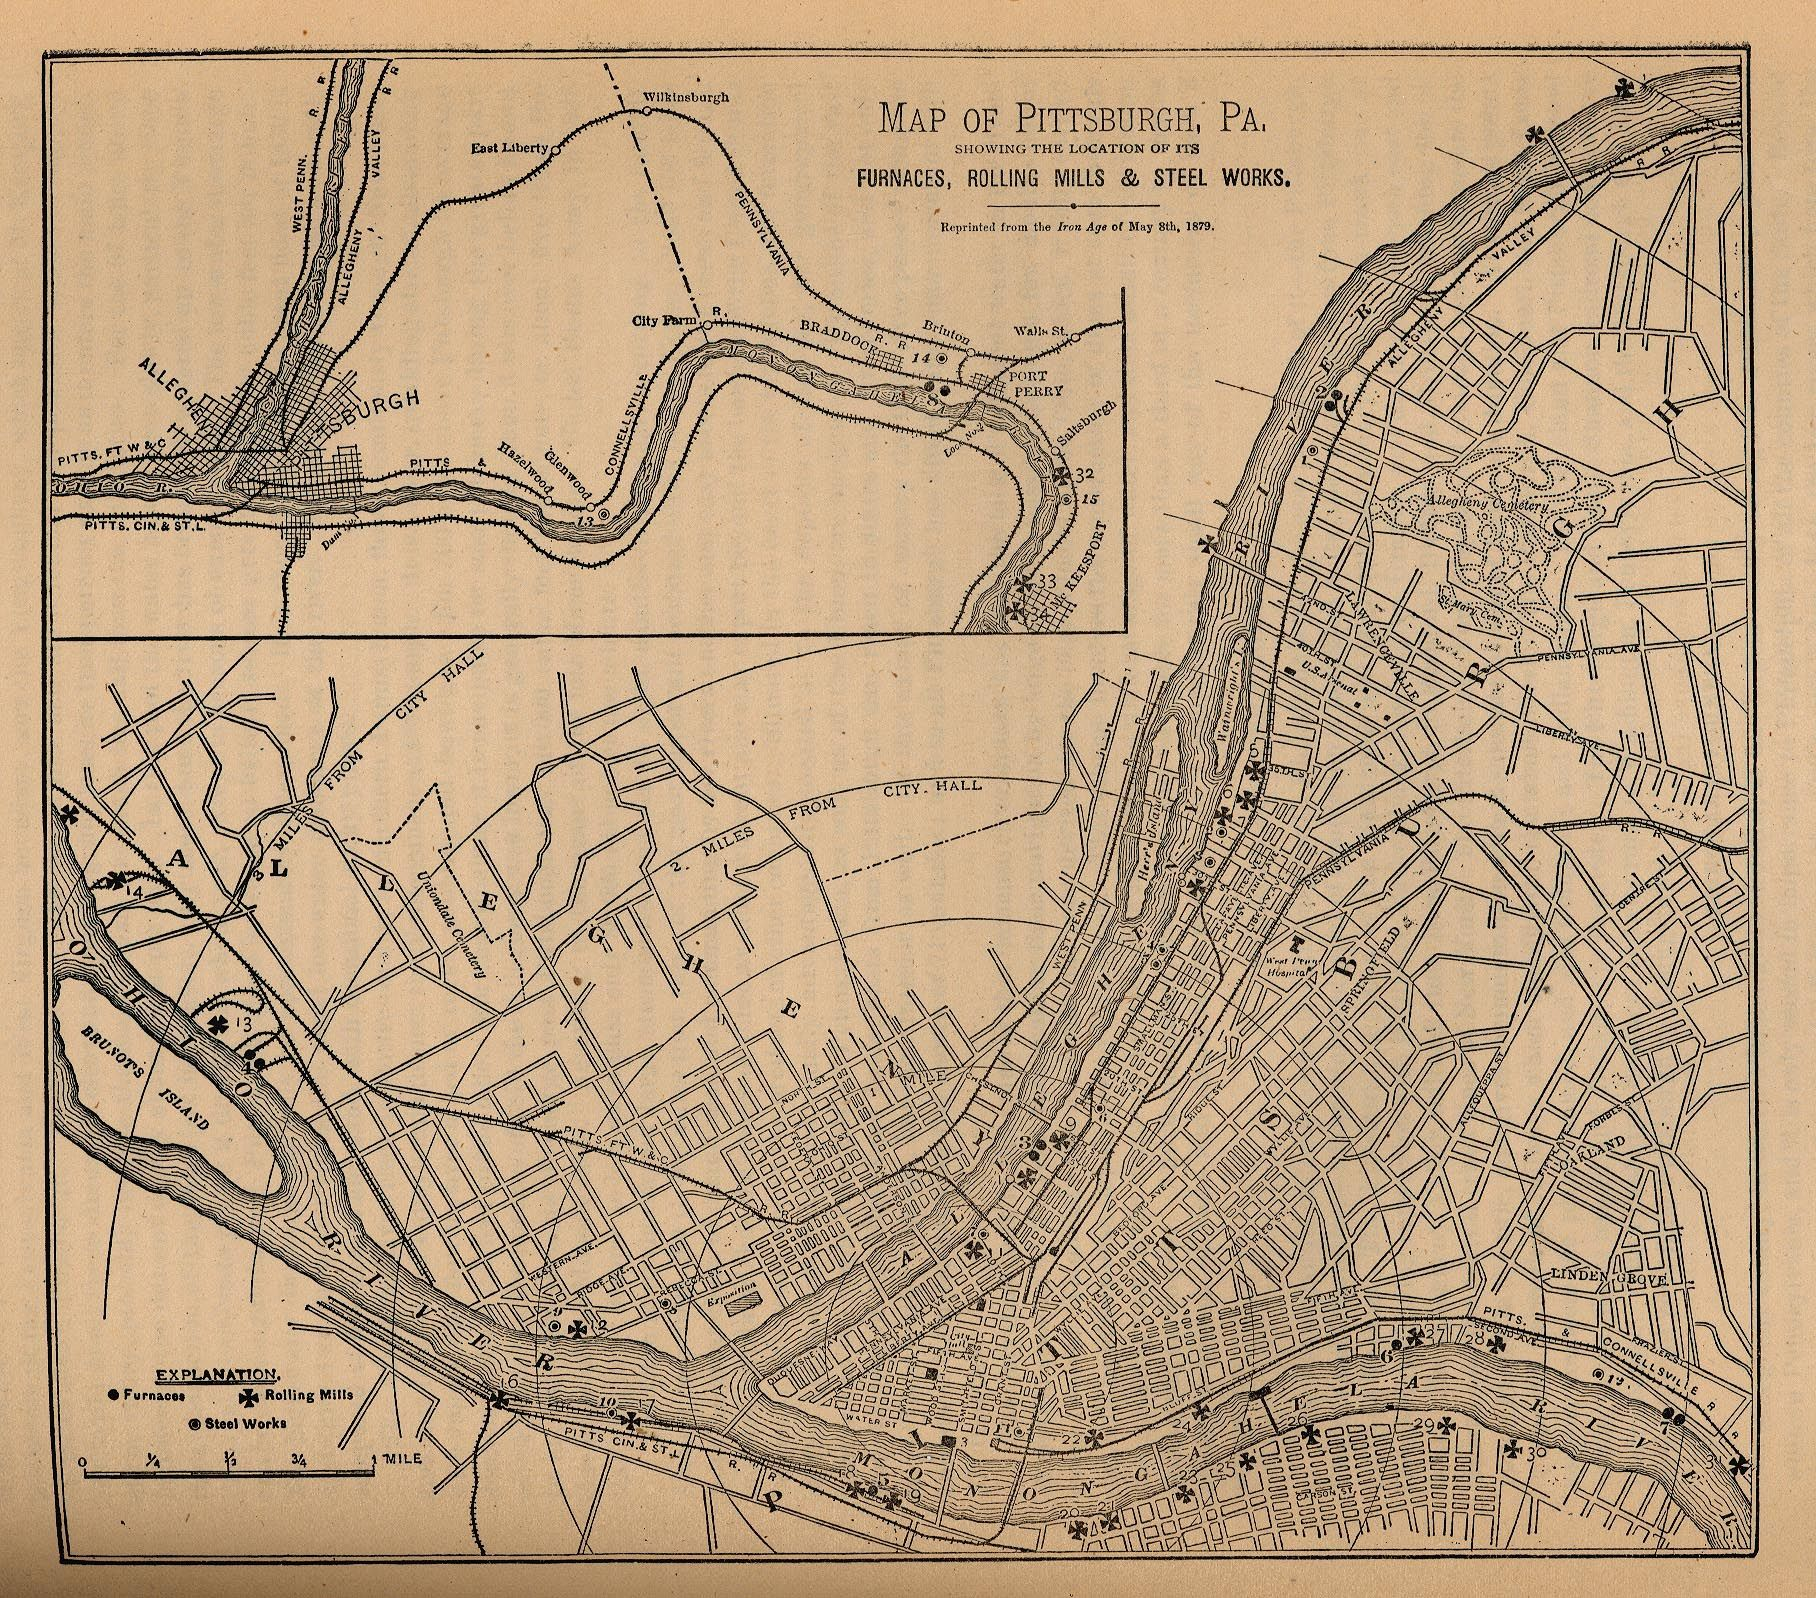 Pittsburgh Map Of Furnaces Rolling Mills And Steel Works - Pittsburgh pa on us map